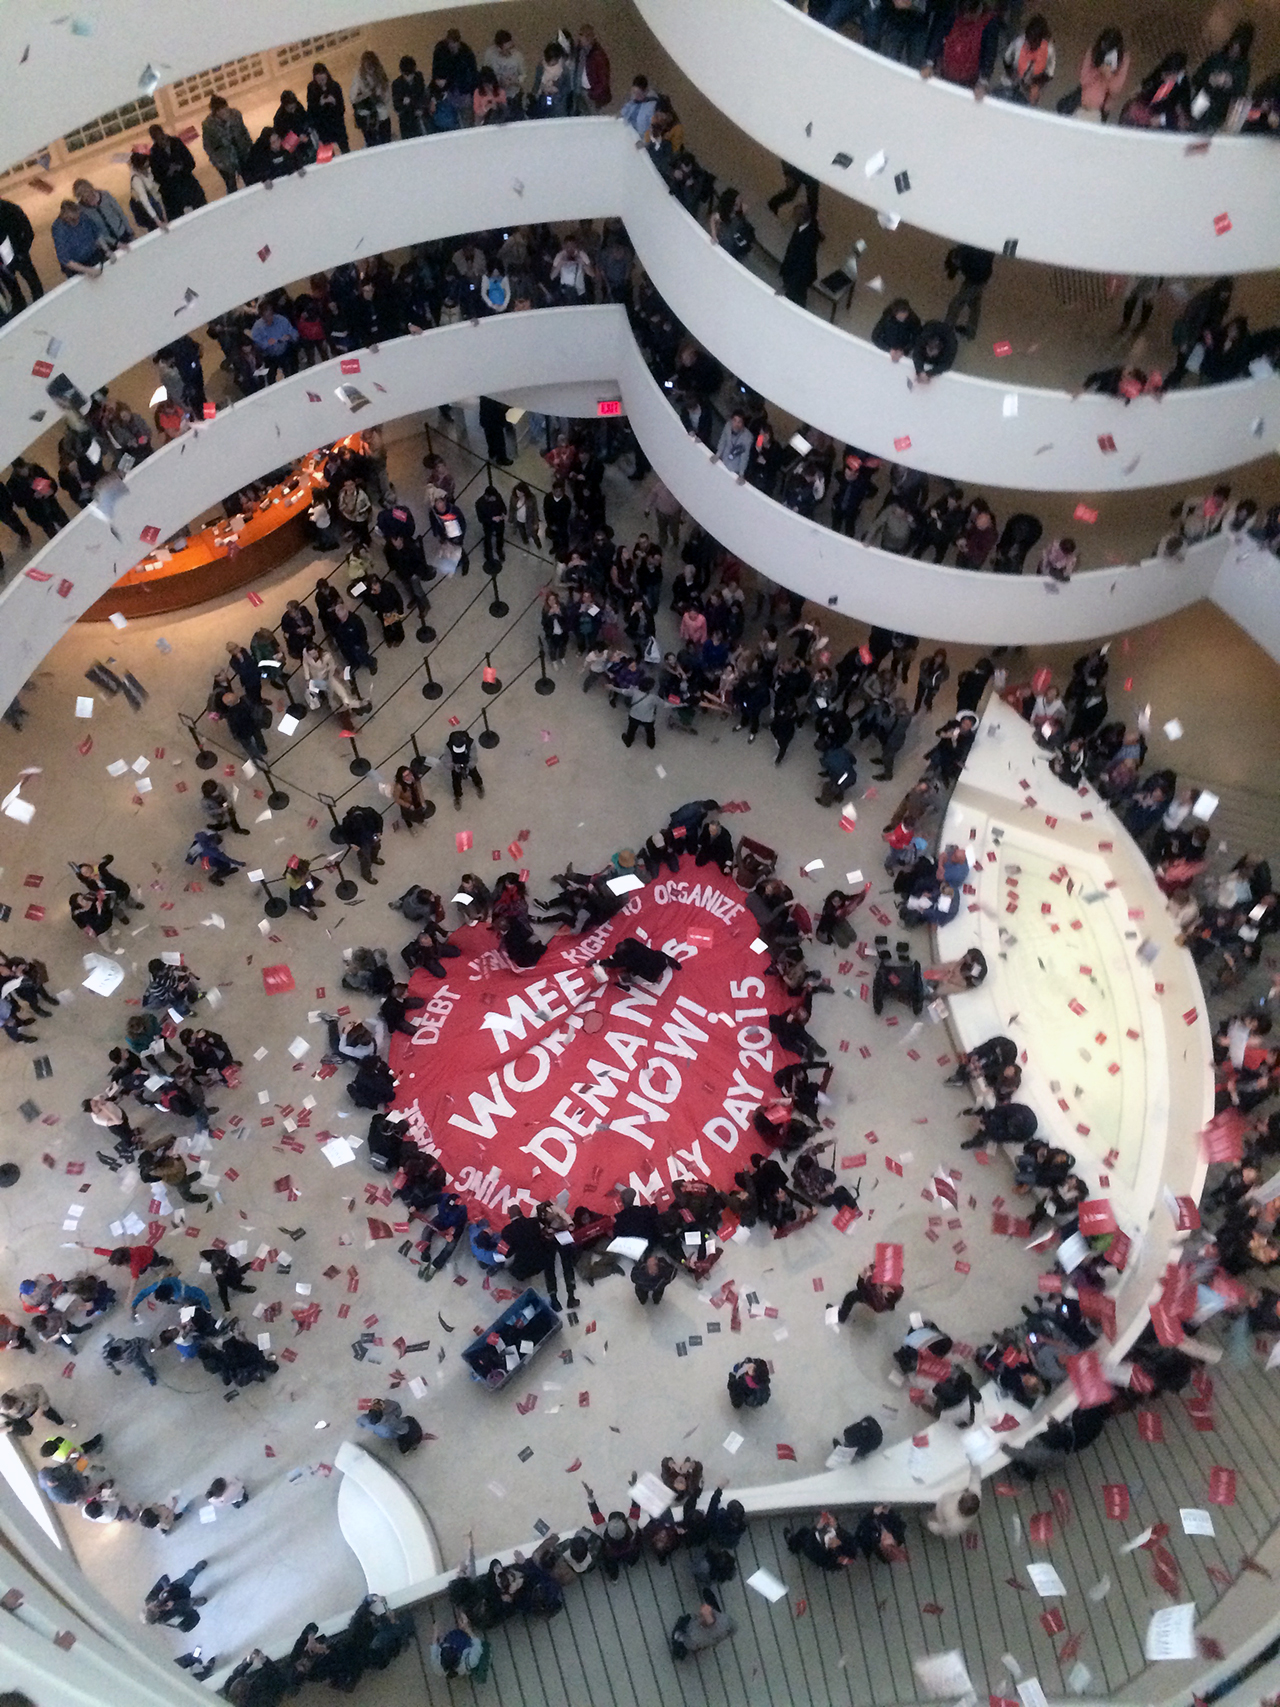 """On May Day 2015, members of the Gulf Ultra Luxury Faction (G.U.L.F.) unveiled a large parachute in the Guggenheim Museum rotunda with the words """"Meet Workers Demands Now"""" (image Benjamin Sutton/Hyperallergic)"""